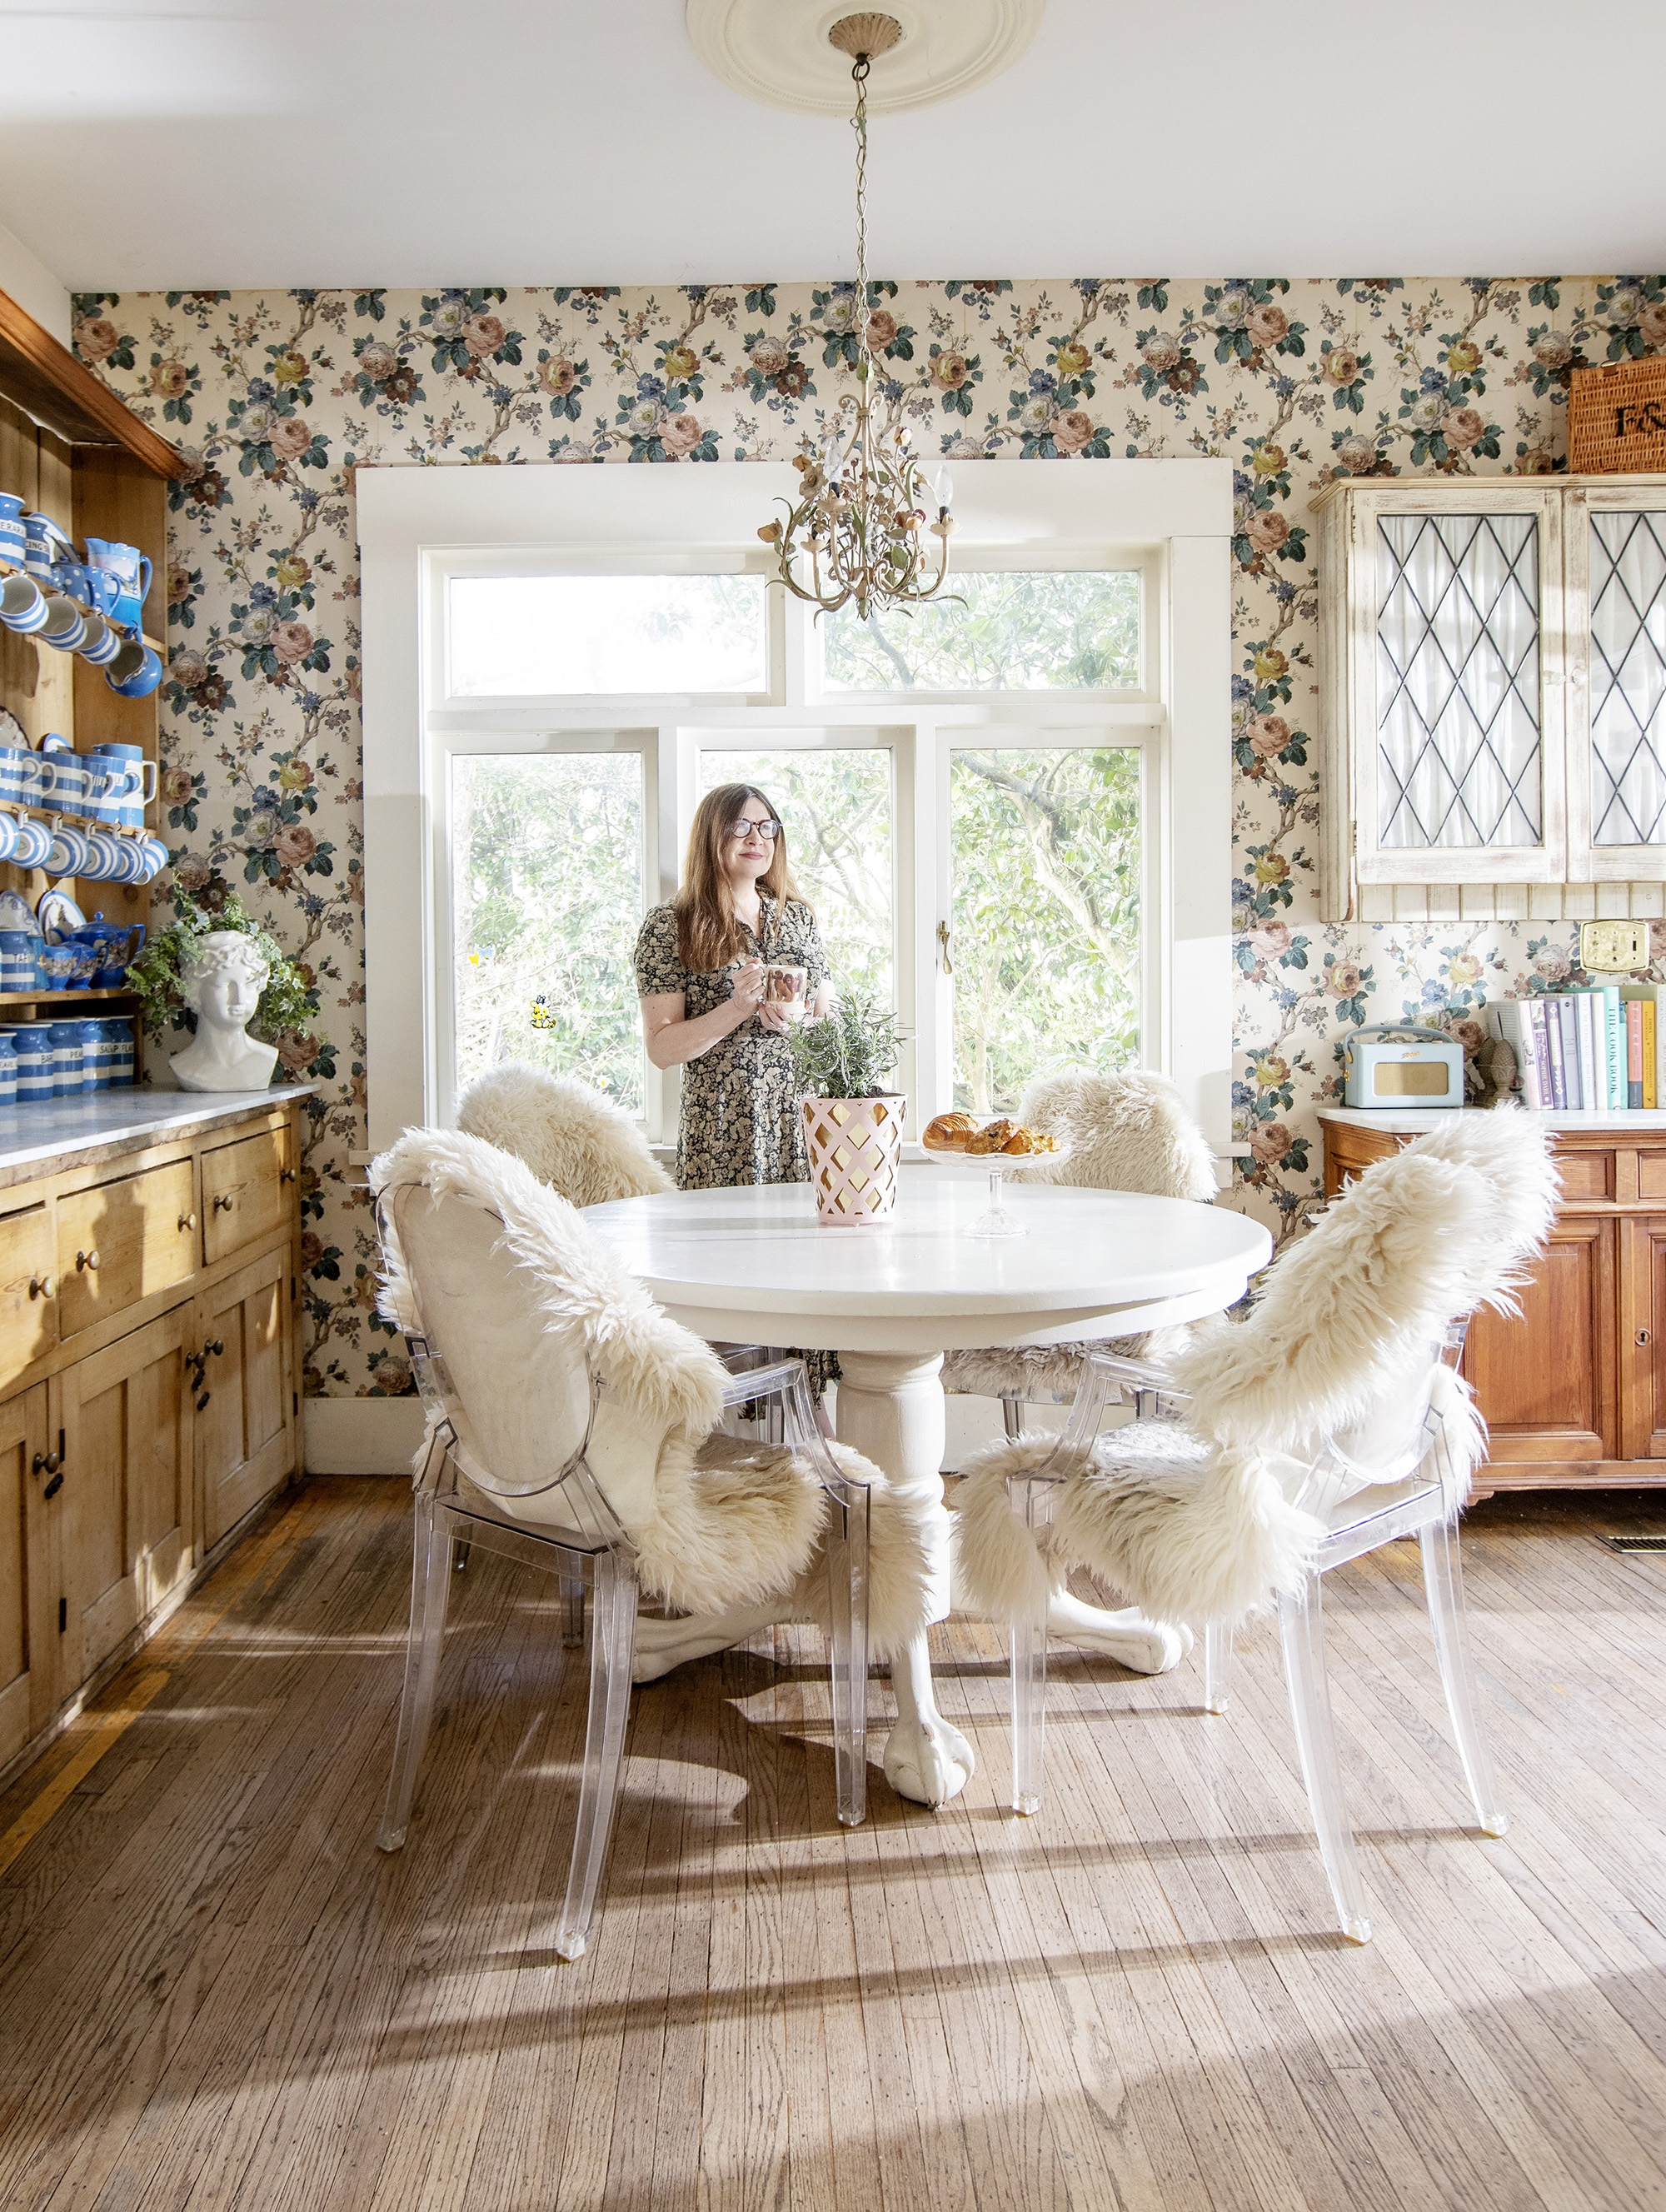 Nikki Renshaw in her kitchen with a cup of coffee